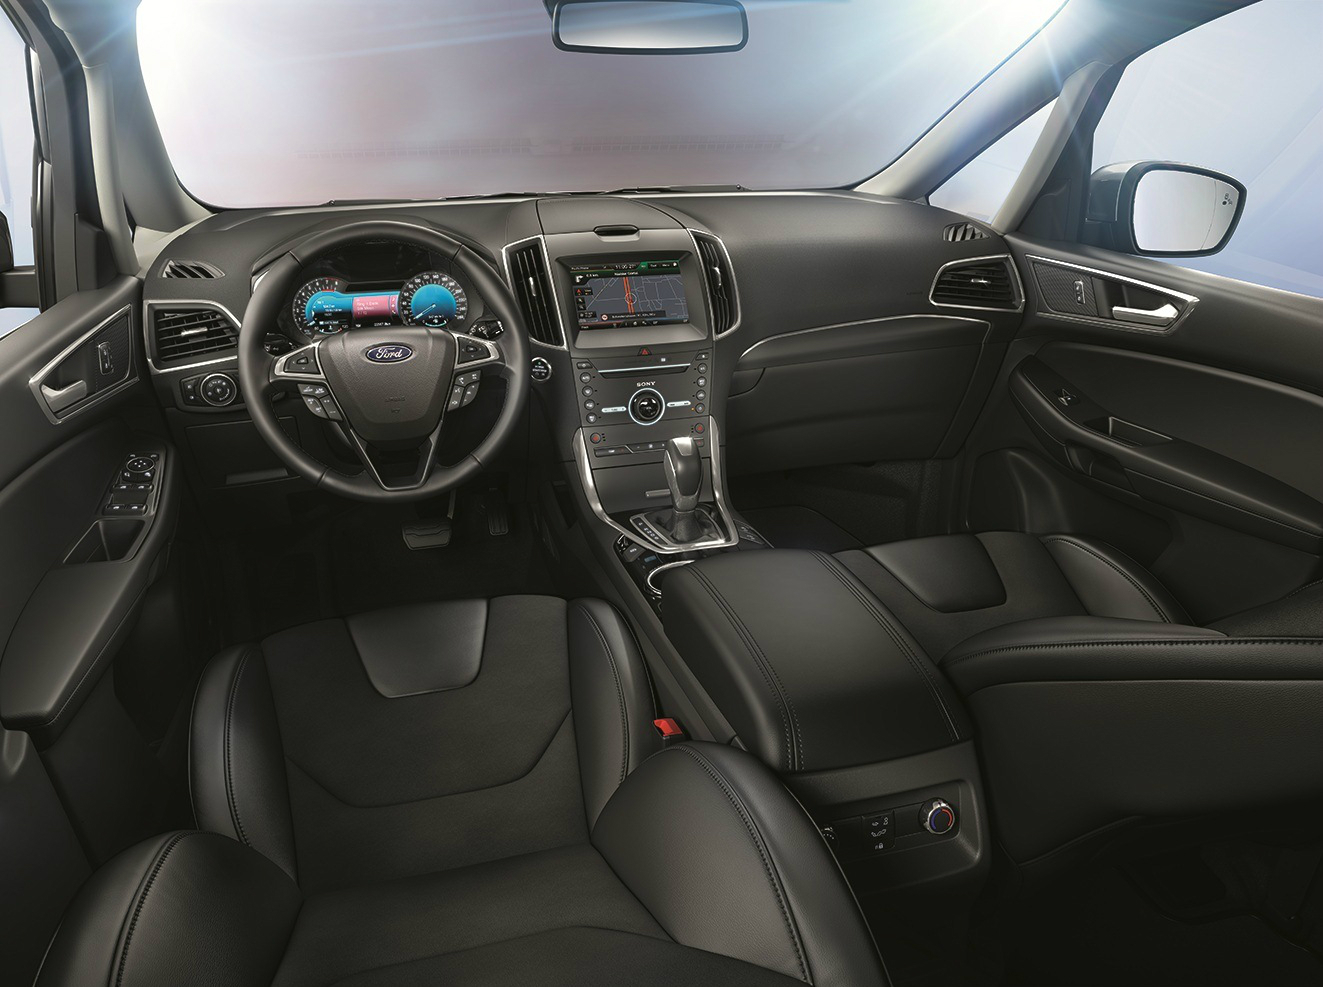 amusing-design-of-the-grey-and-black-seats-ideas-with-balck-steering-wheels-ideas-as-the-ford-s-max-2015-interior